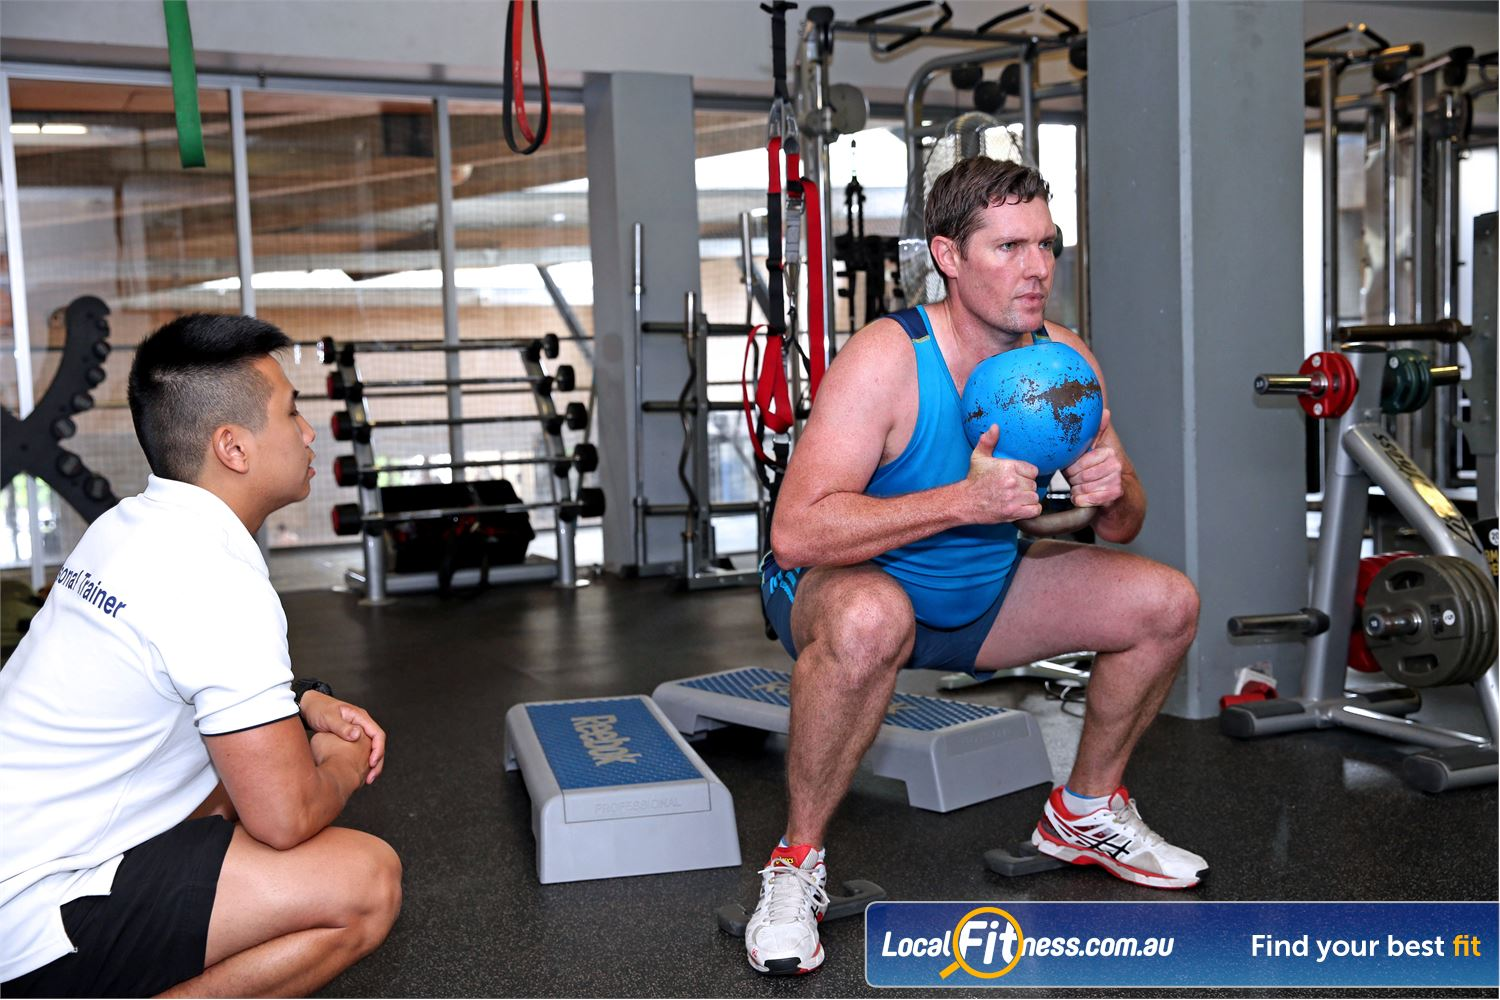 Cook and Phillip Park Aquatic and Fitness Centre Sydney Our Sydney gym team can monitor your goals with private personal training.